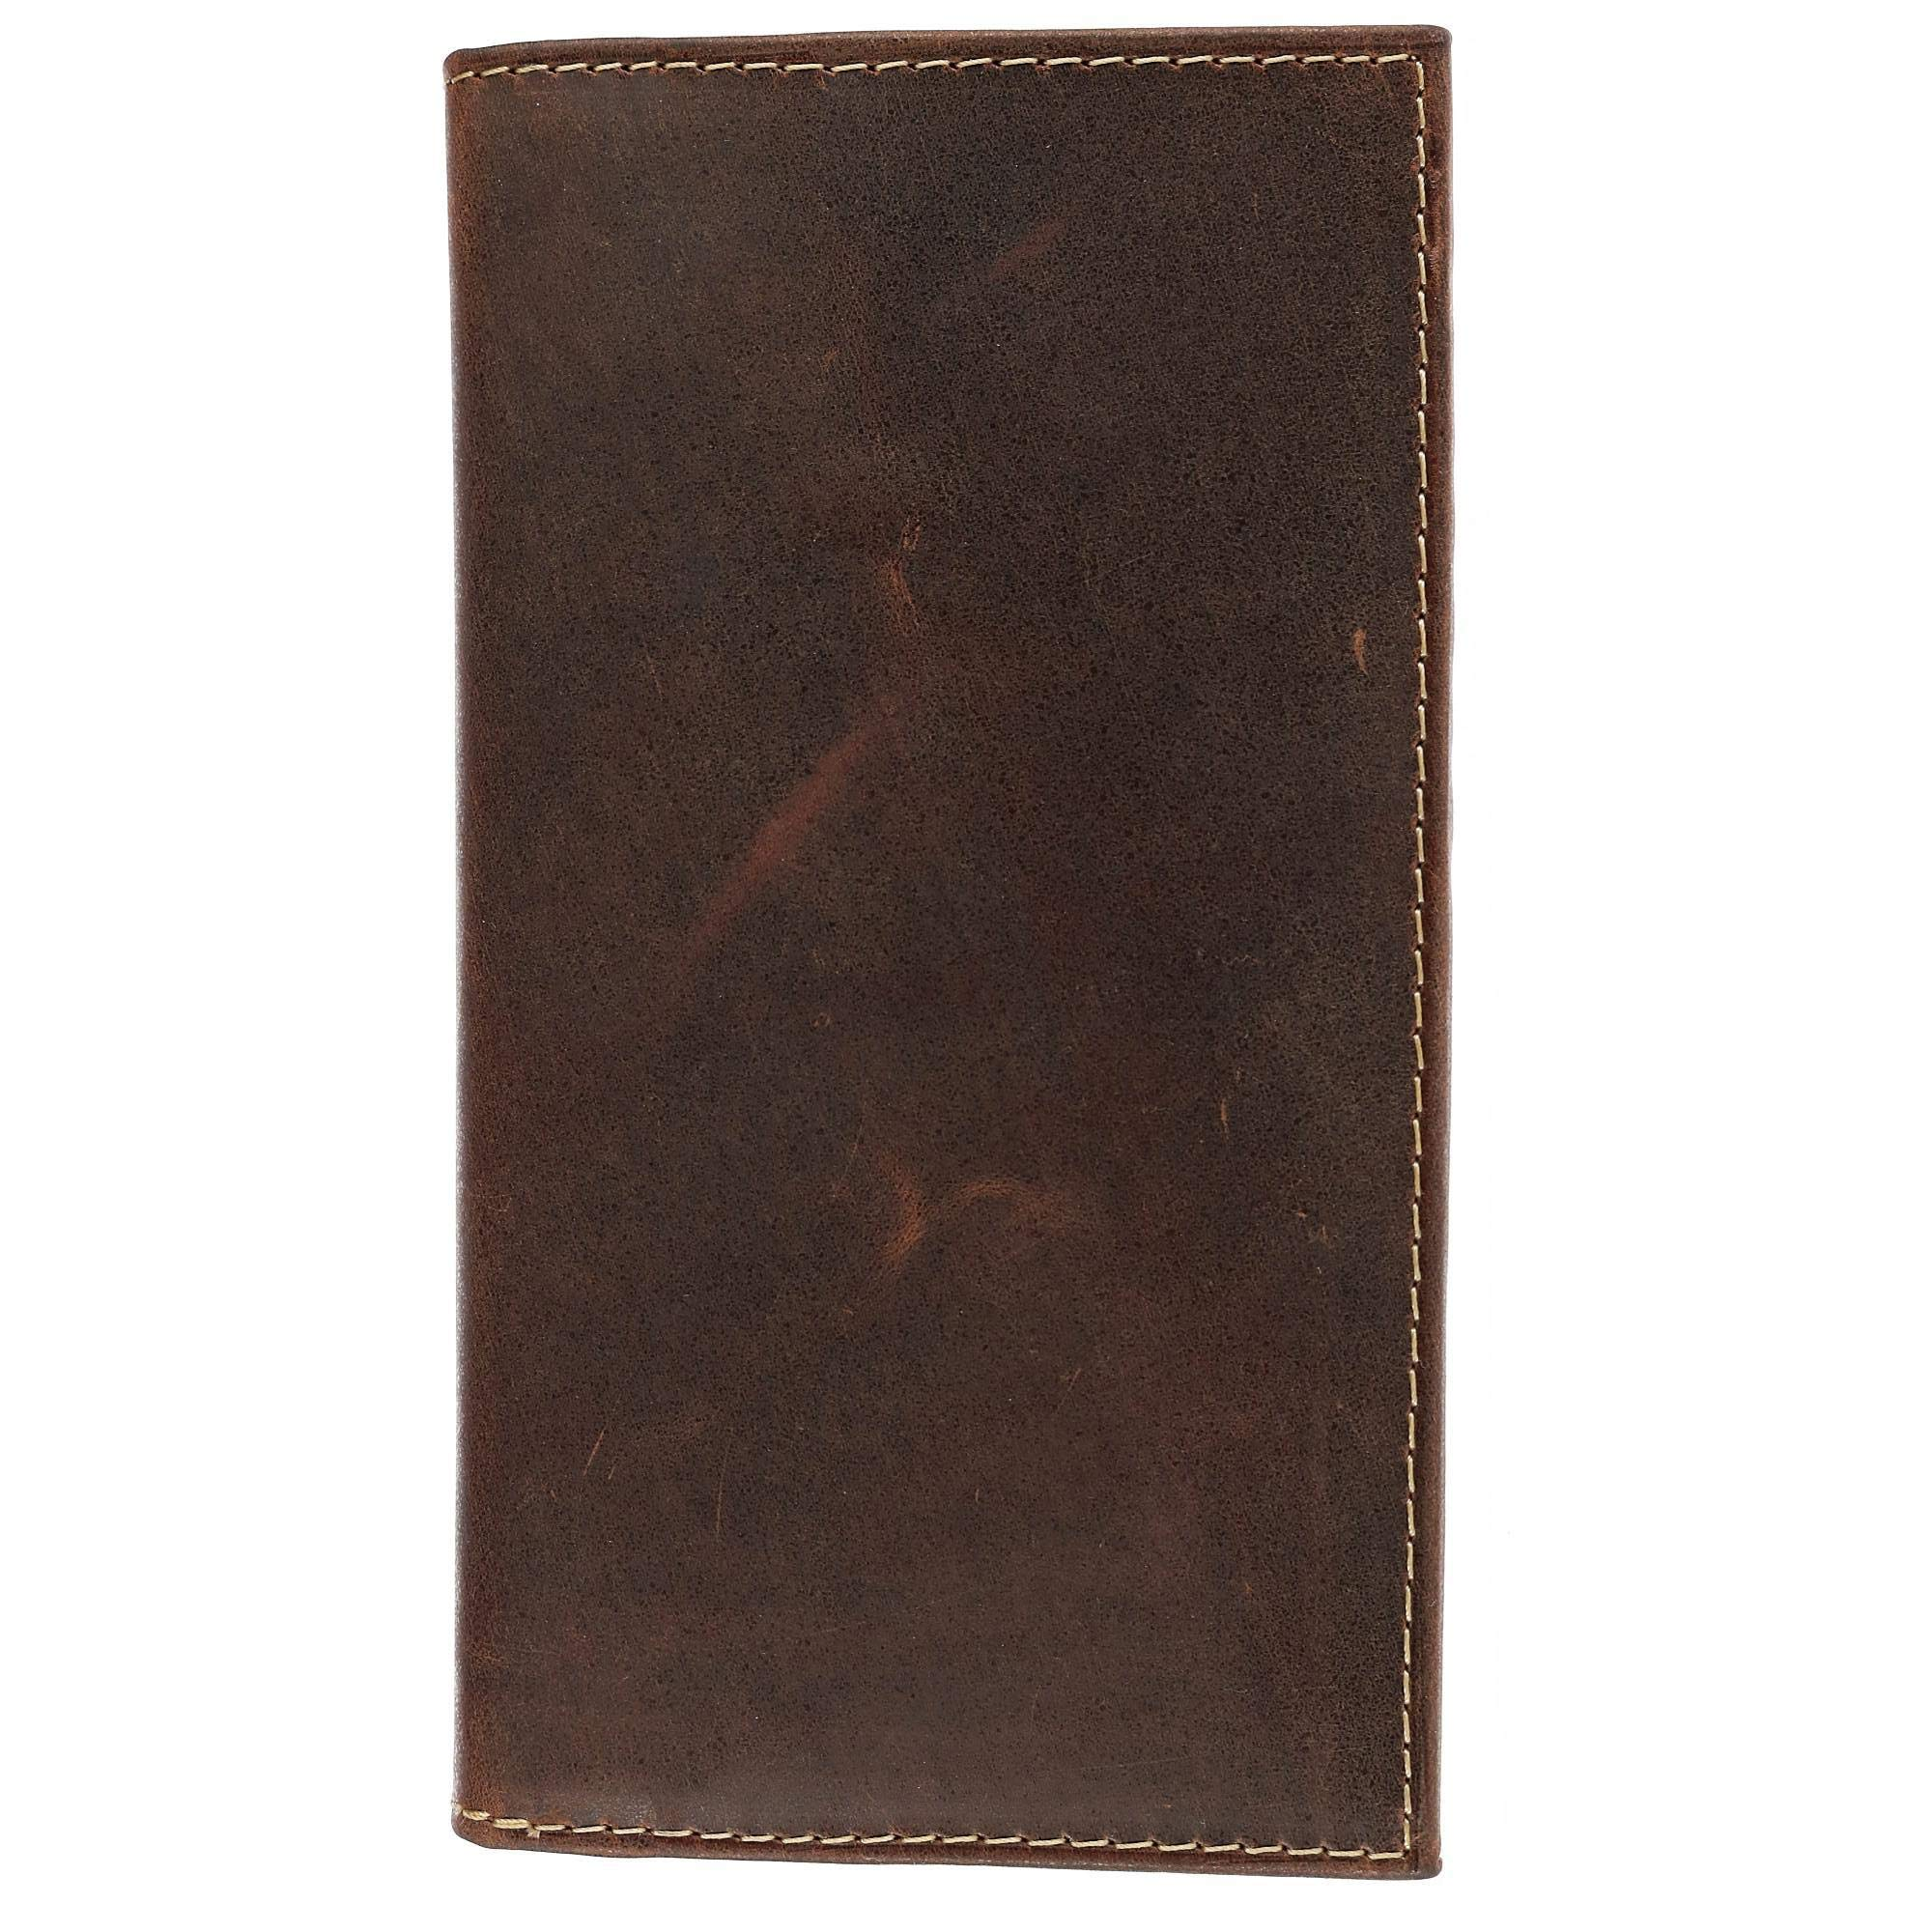 CTM Hunter Leather Distressed Checkbook Cover, Brown